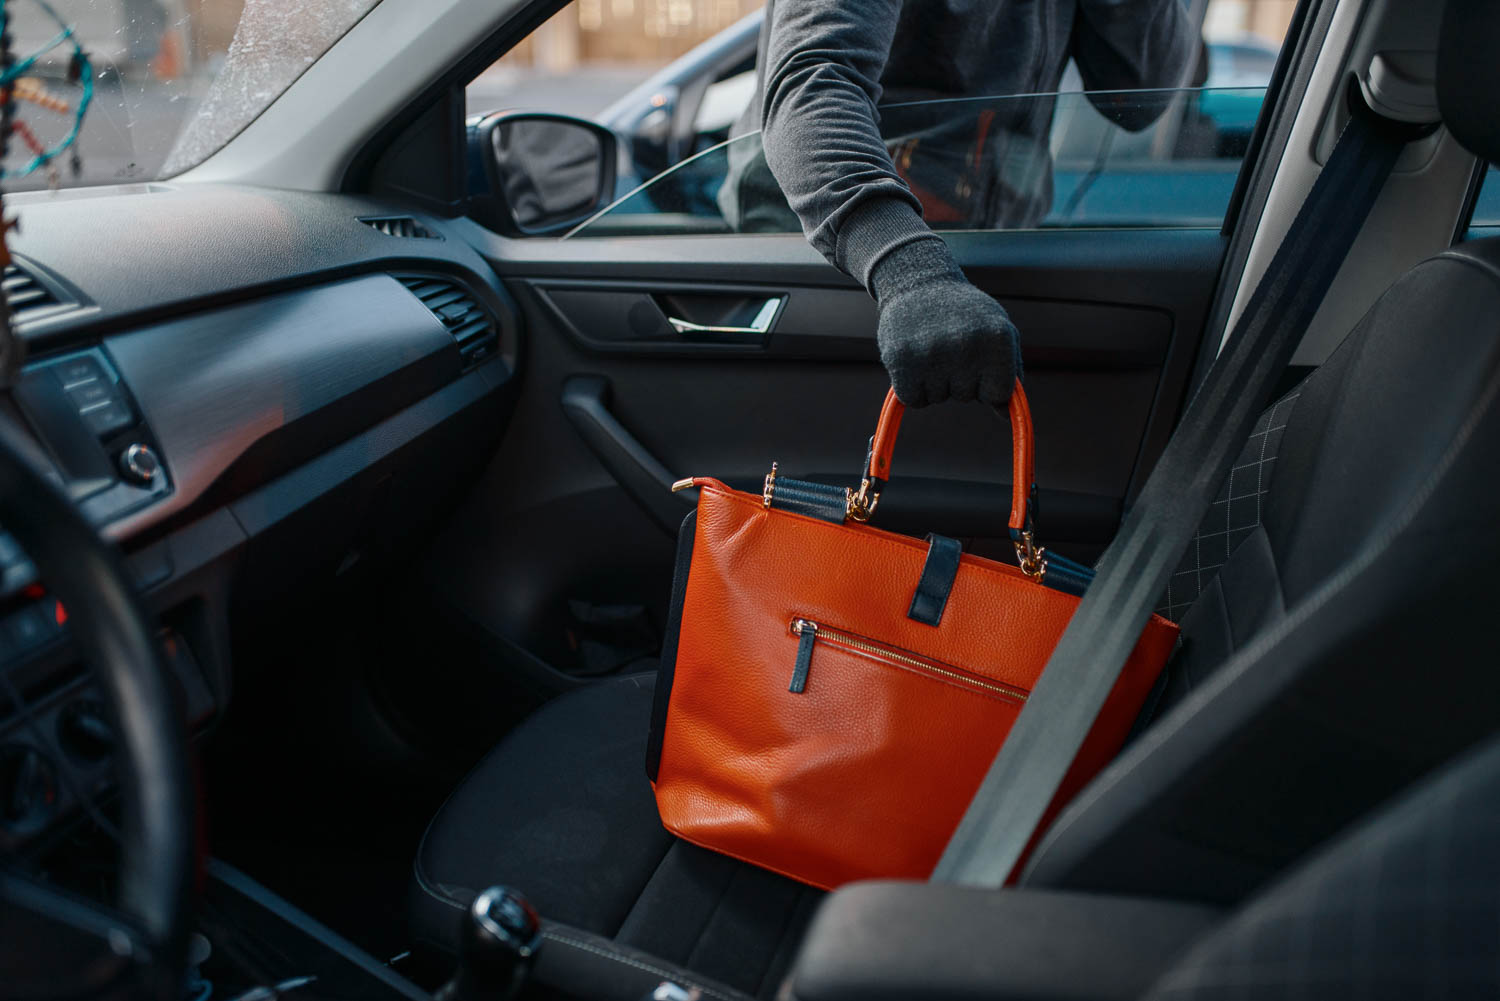 Fort Lauderdale petit or grand theft charges can come from stealing purses or breaking into cars